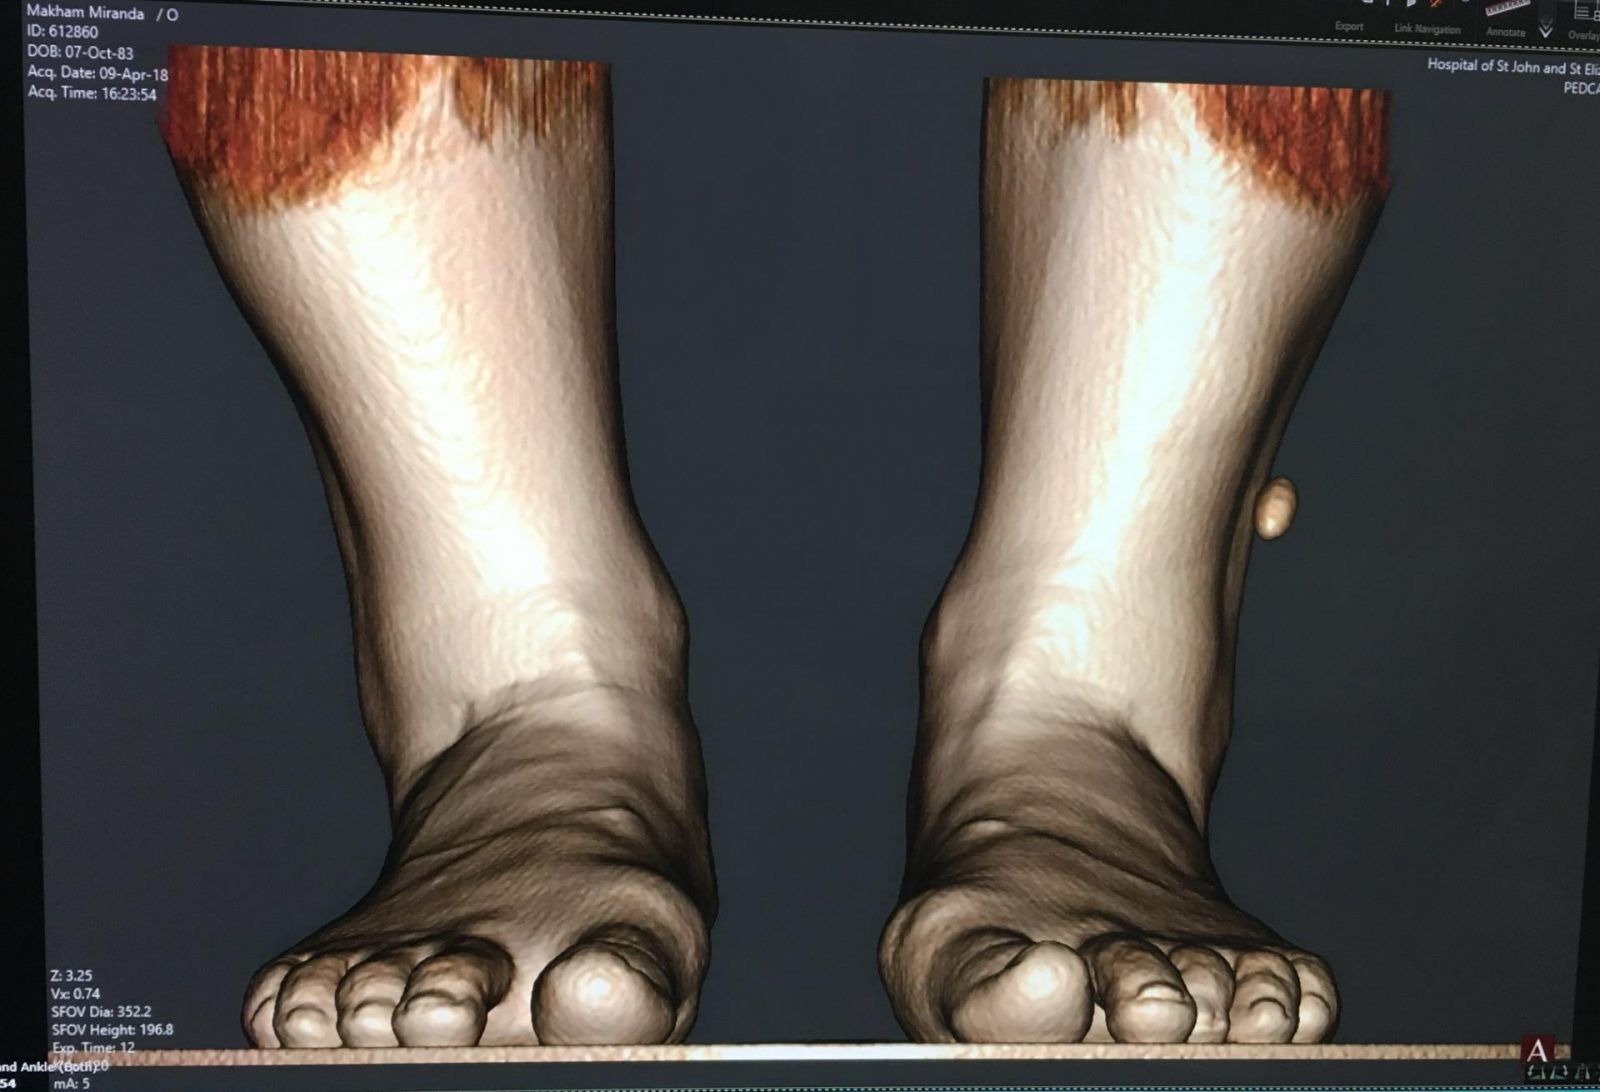 Bunion feet xray